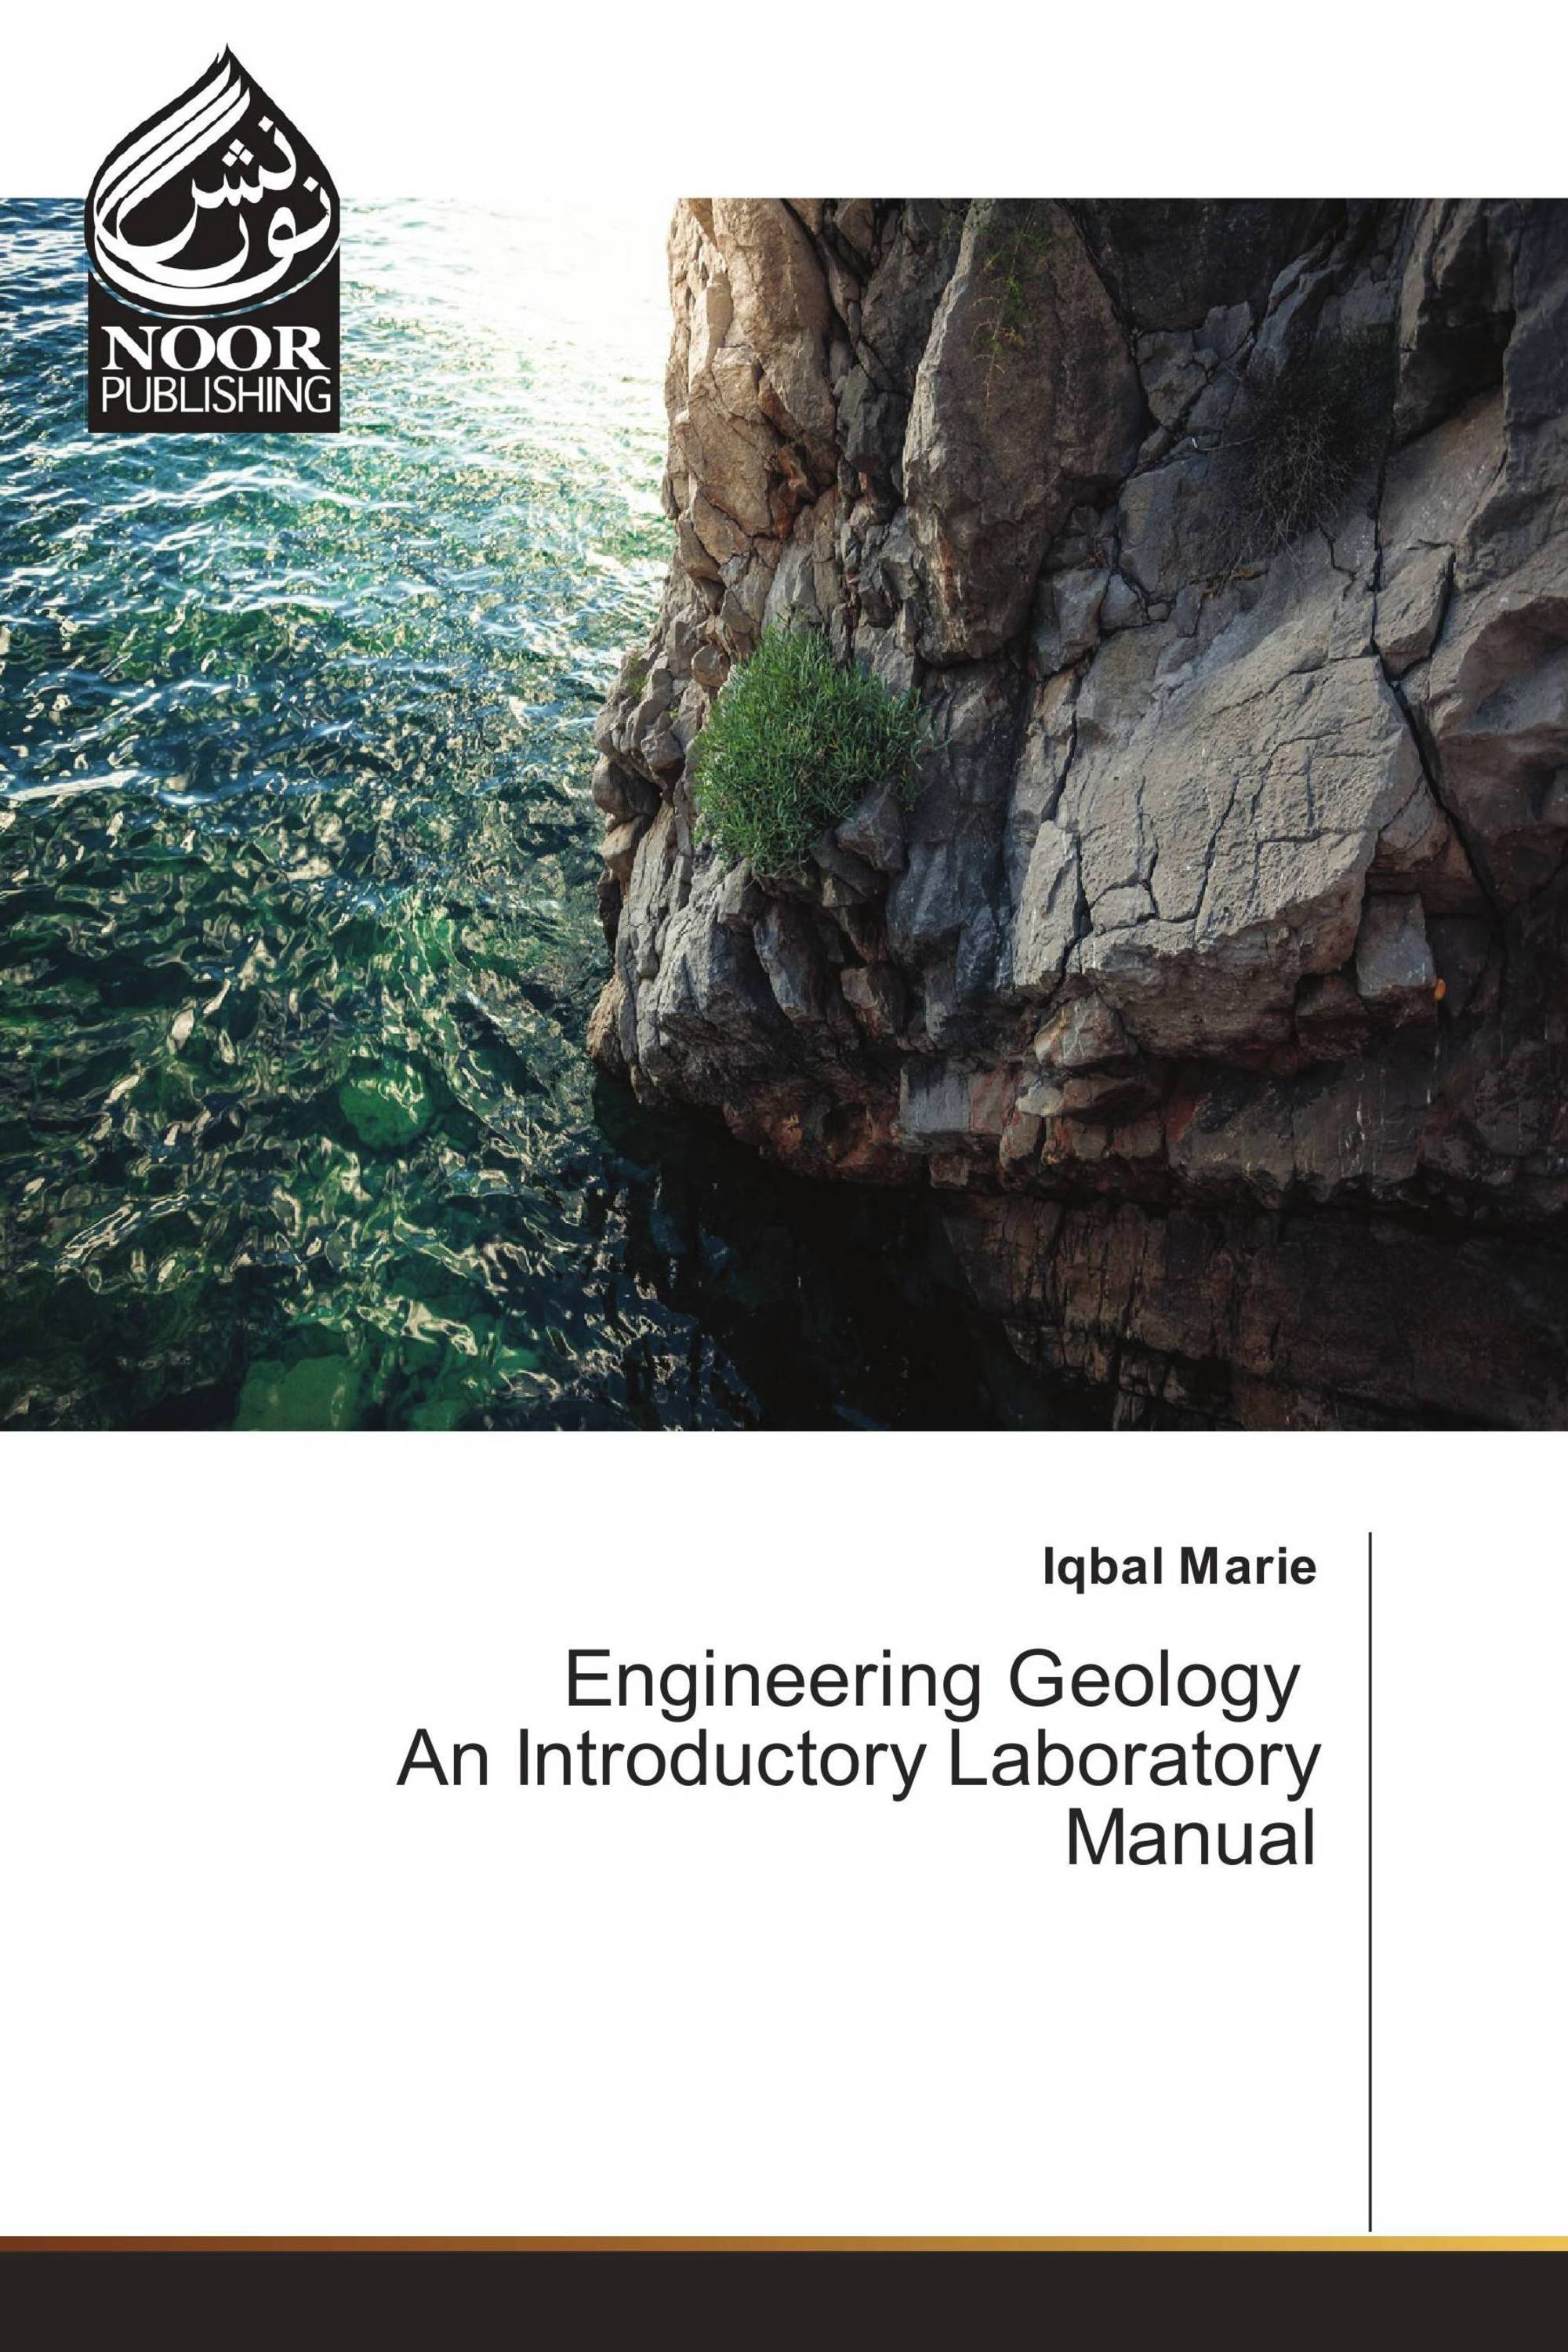 Engineering Geology An Introductory Laboratory Manual